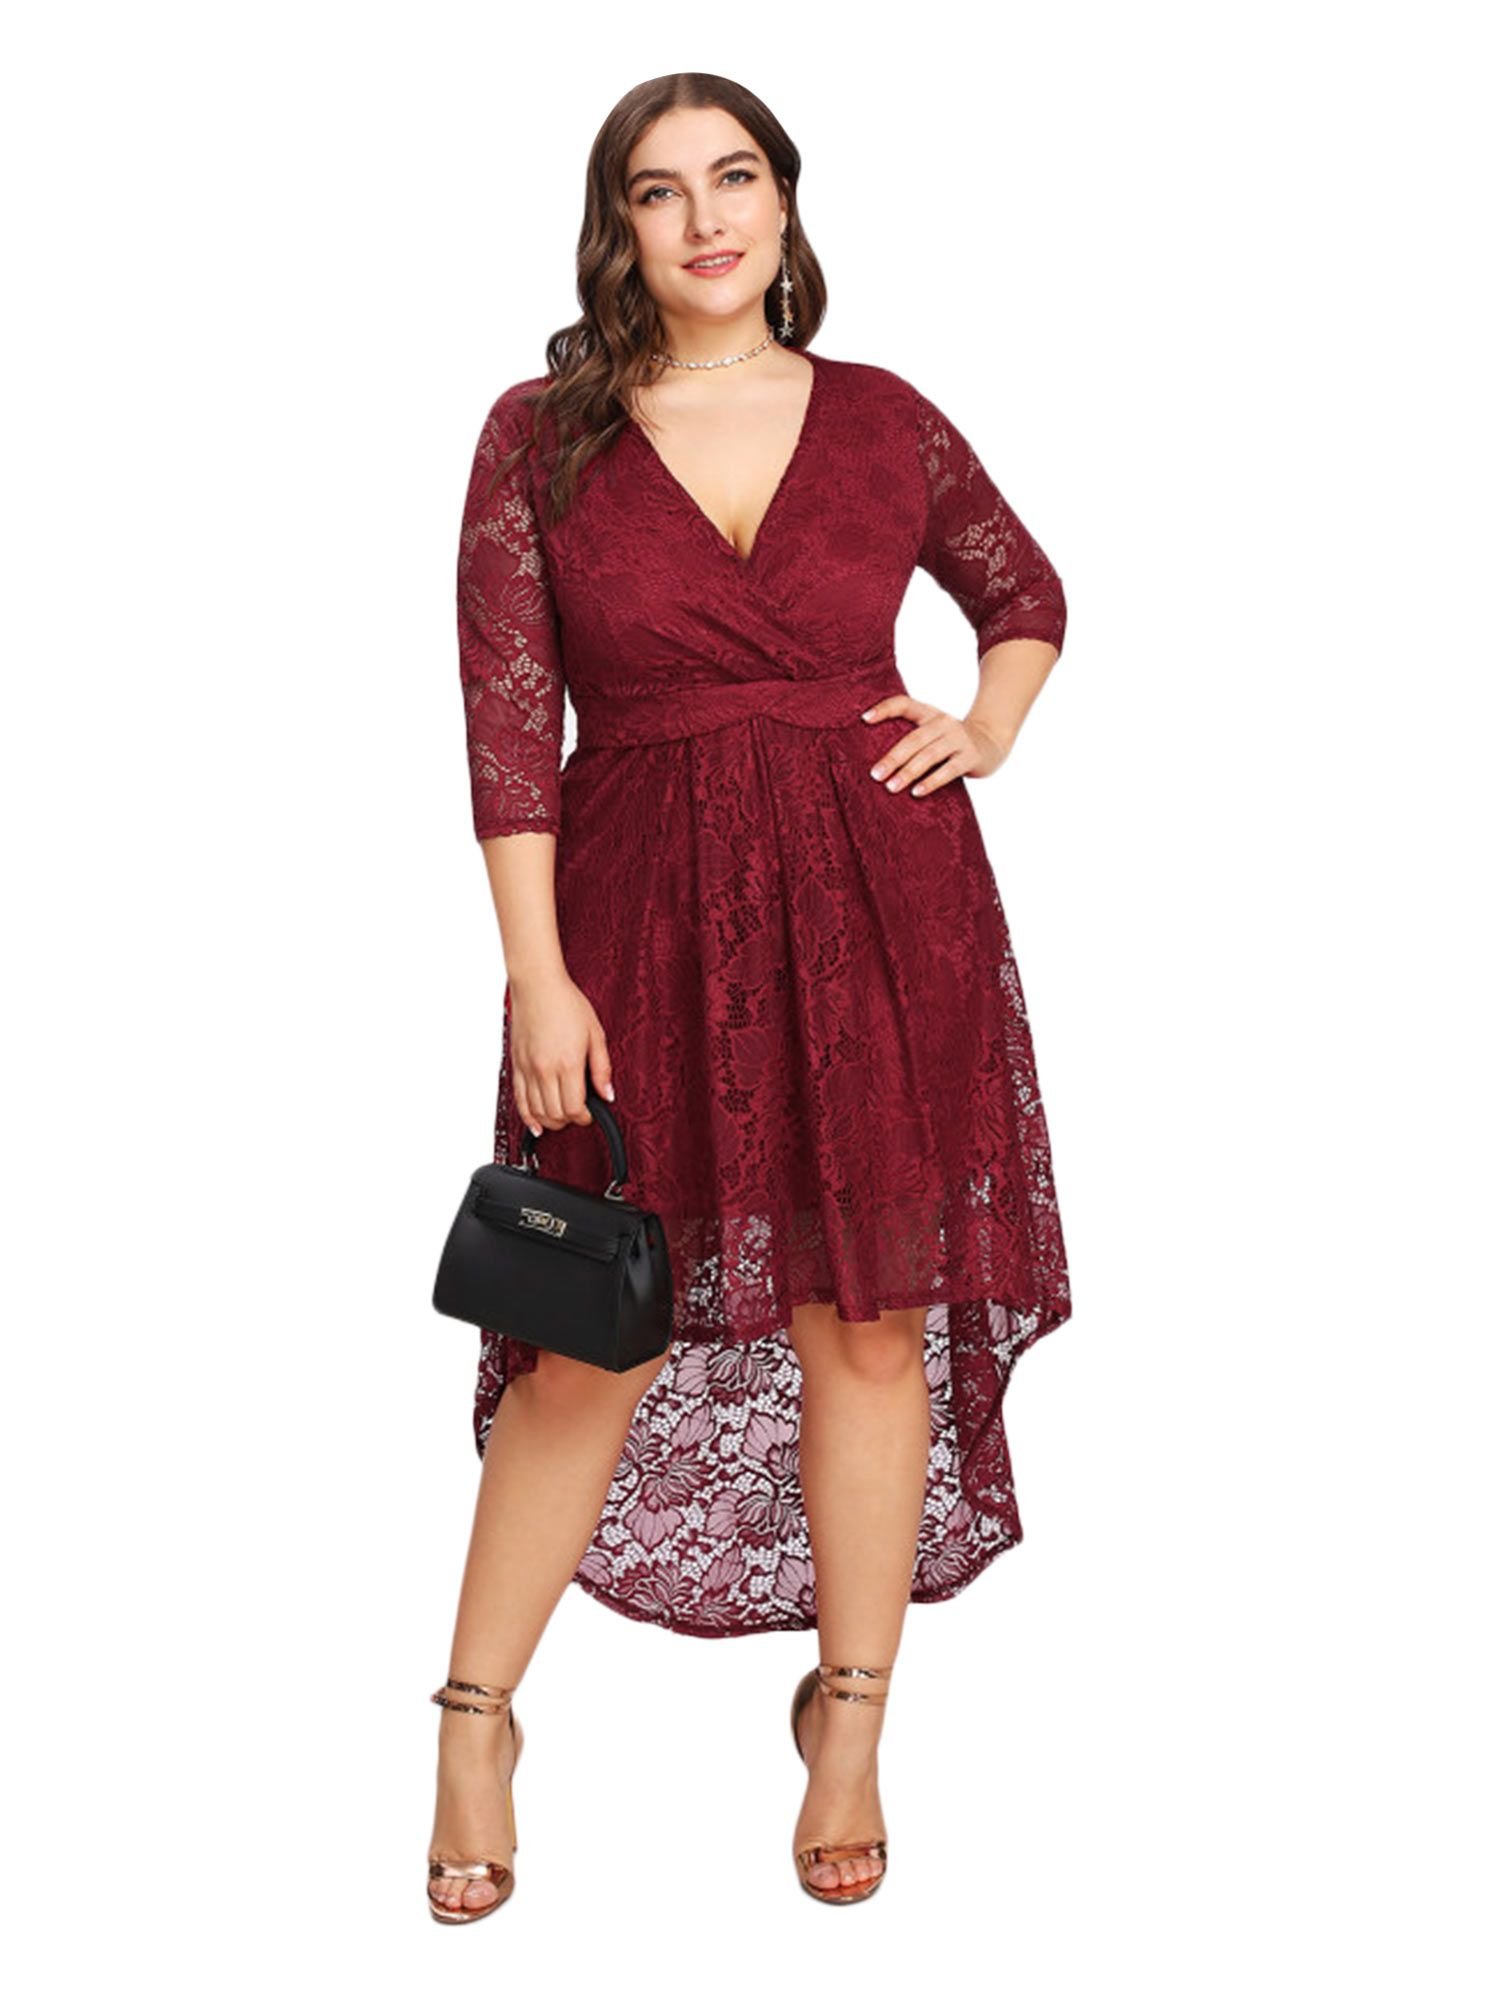 4bbb3c017a6 ESPRLIA Women s Plus Size Floral Lace Hi-Lo Cocktail Formal Swing Dress